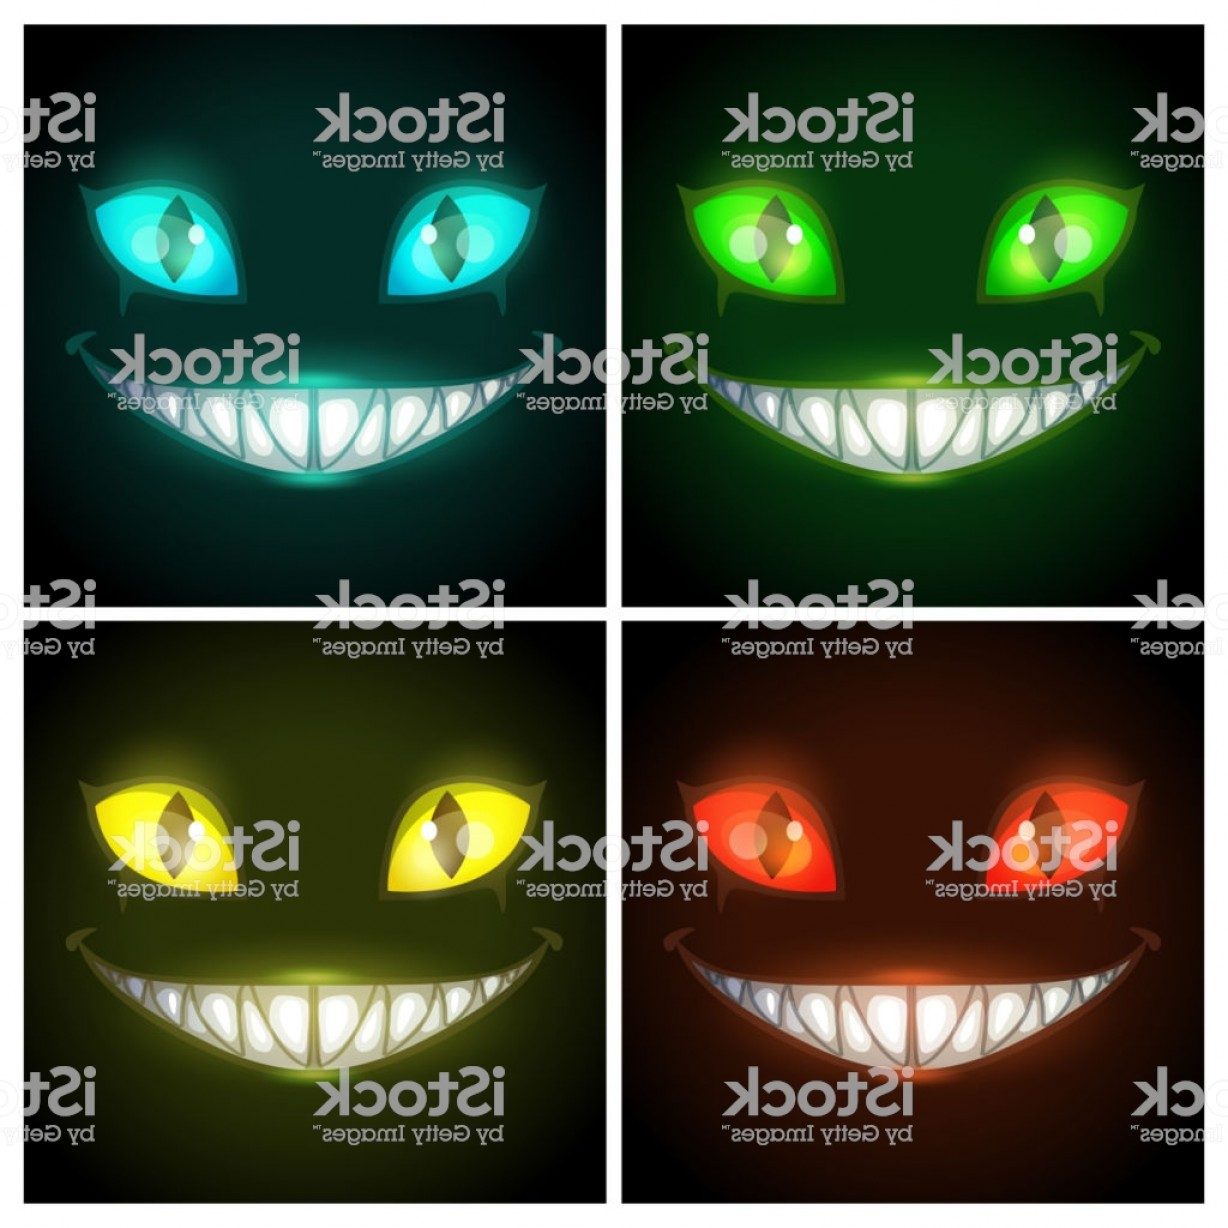 Cool Evil Vectors: Halloween Creepy Posters Set Fantasy Scary Smiling Evil Animal Face On The Black Gm